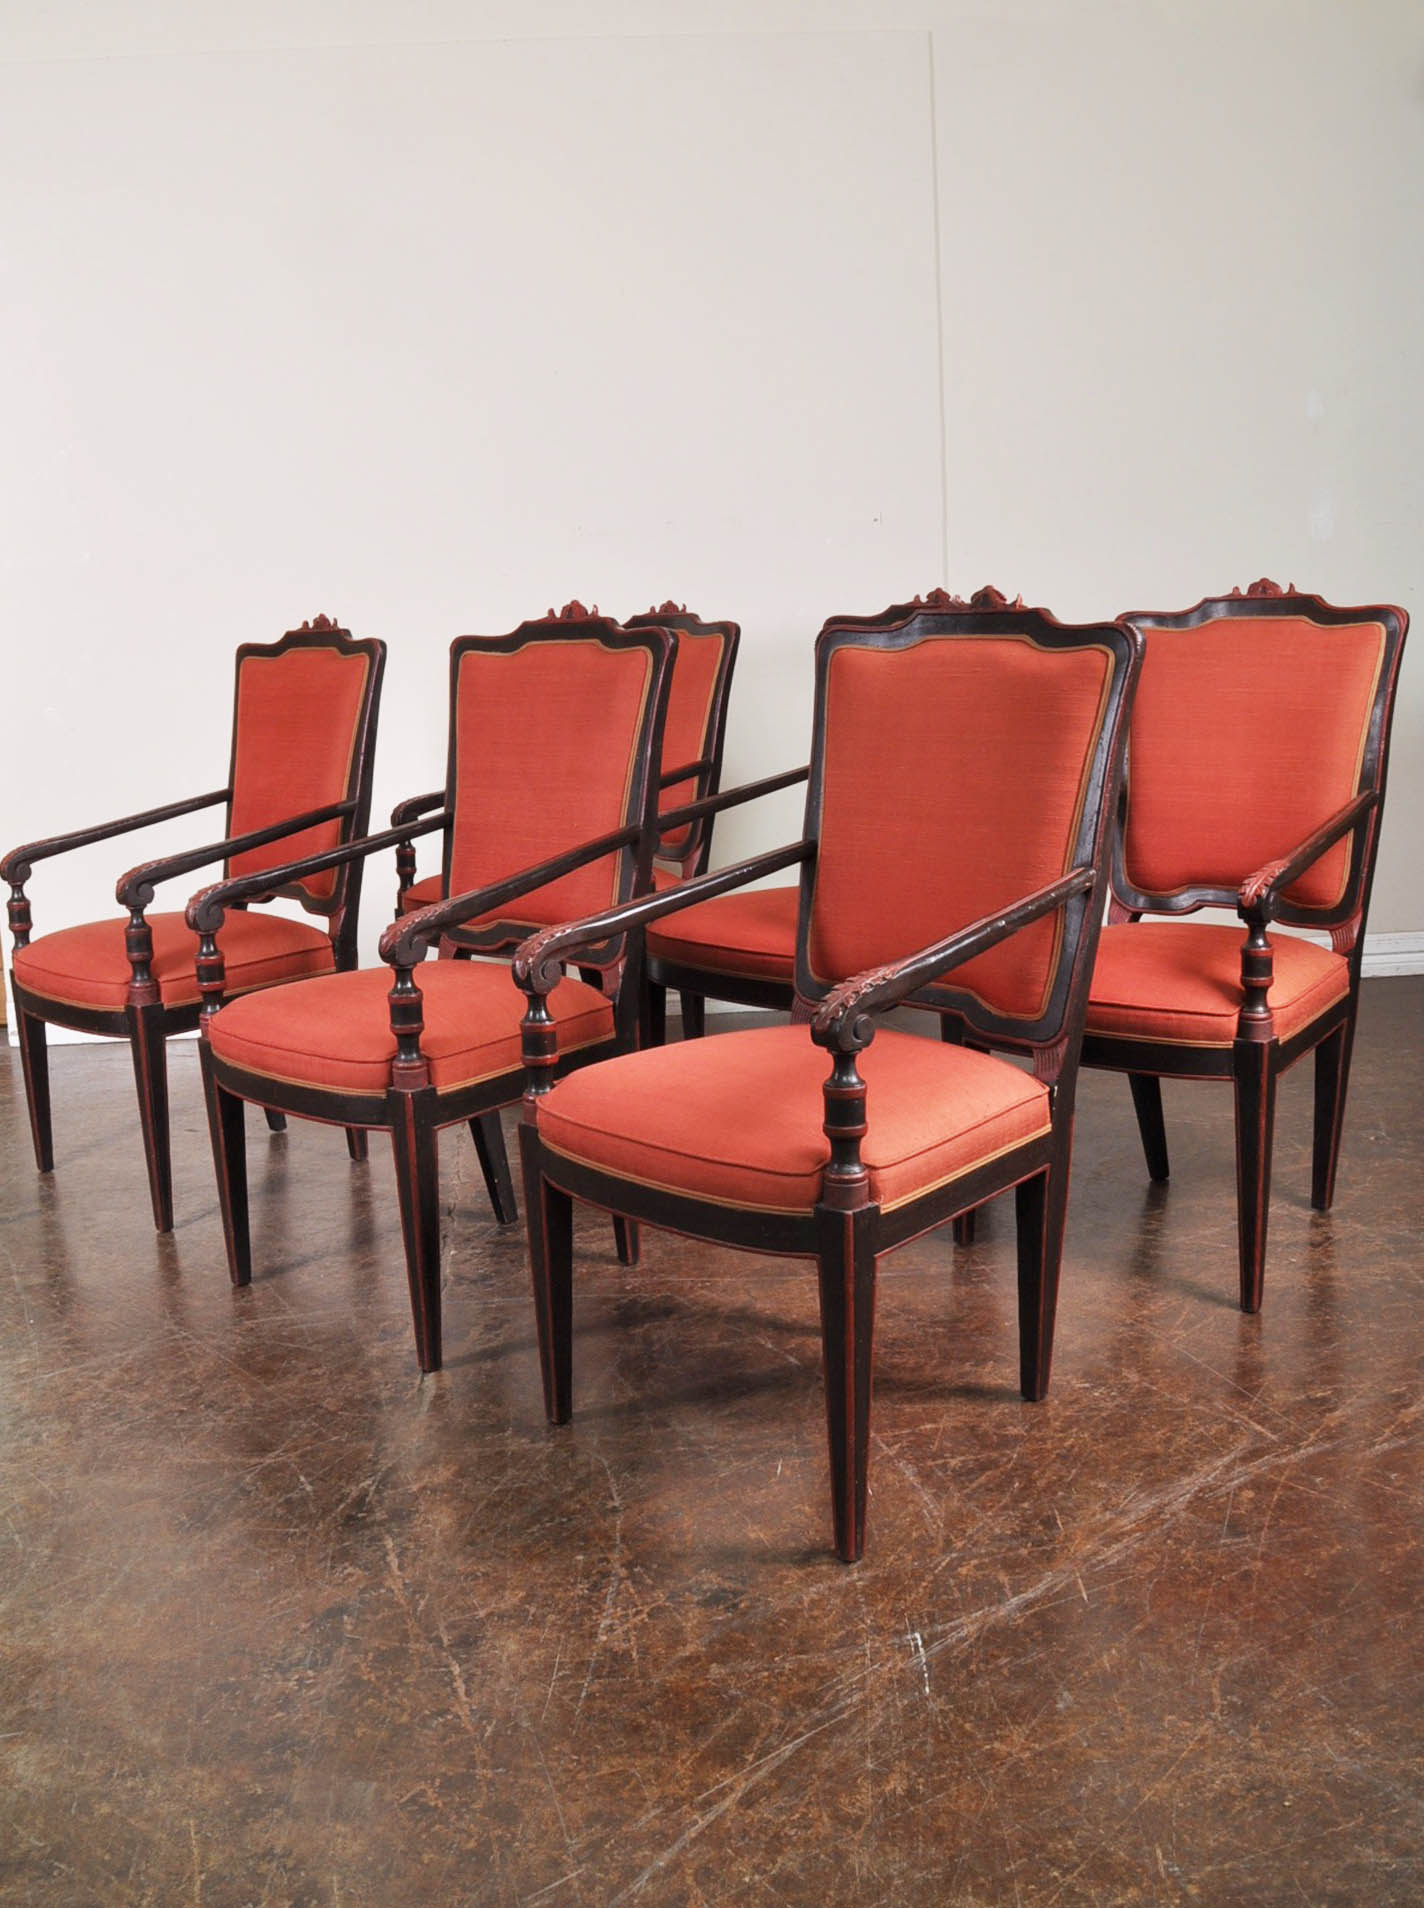 Red Upholstered Dining Chairs Set Of Six Wooden Dining Chairs With Red Upholstered Seats And Backs